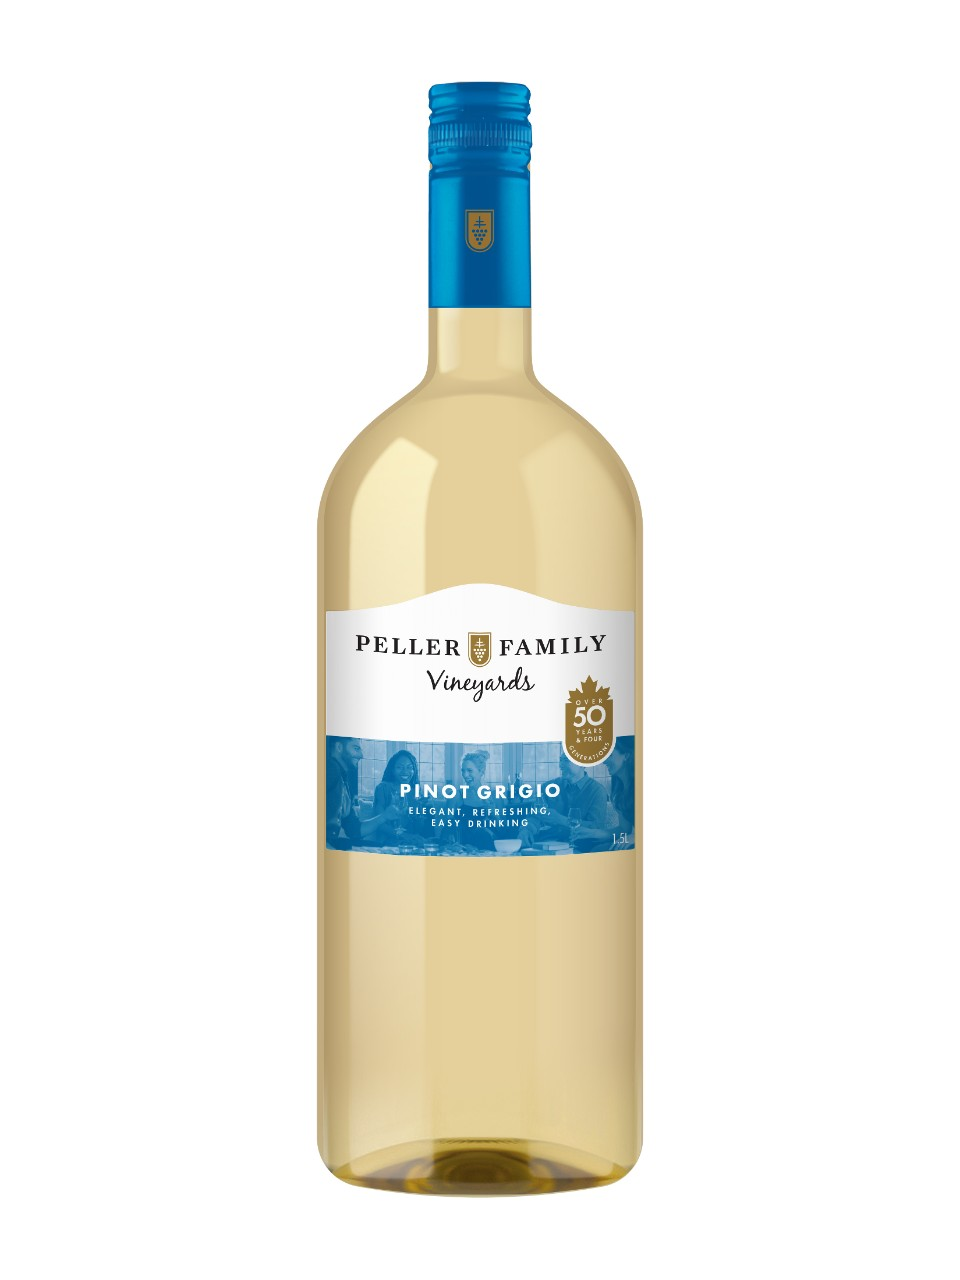 Pinot Grigio Peller Family Vineyards